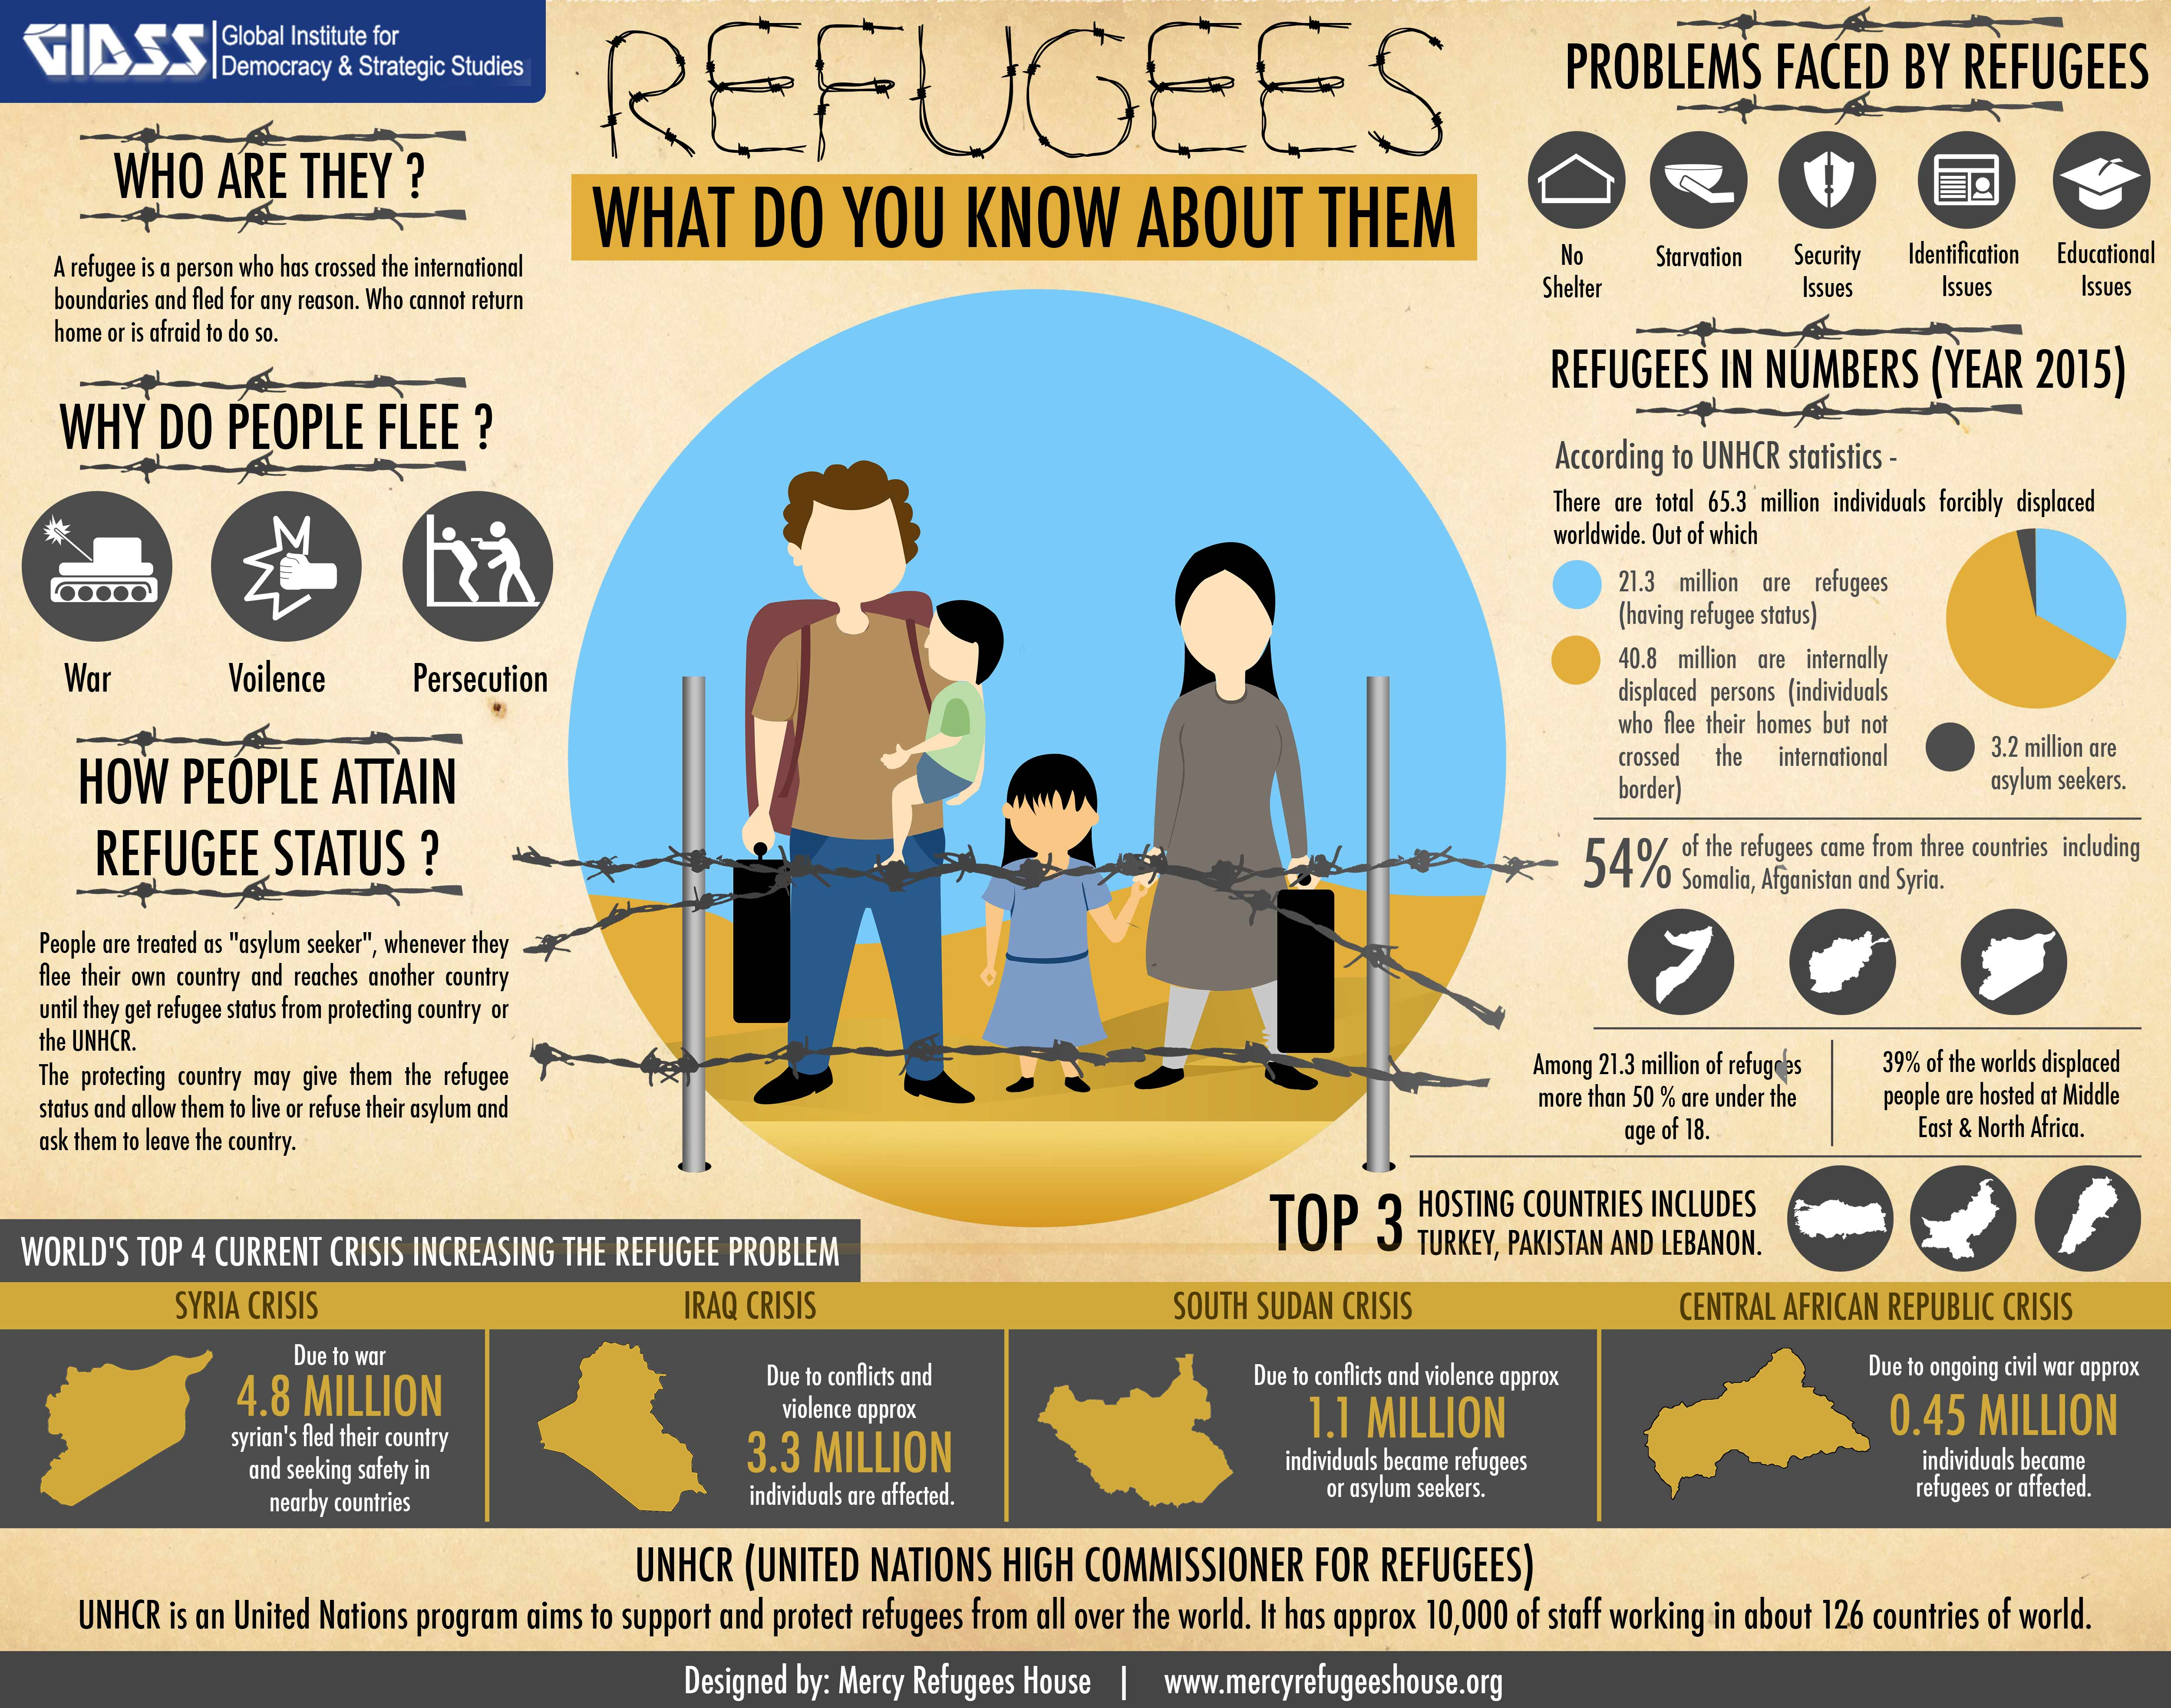 What Do You Know About Refugees?